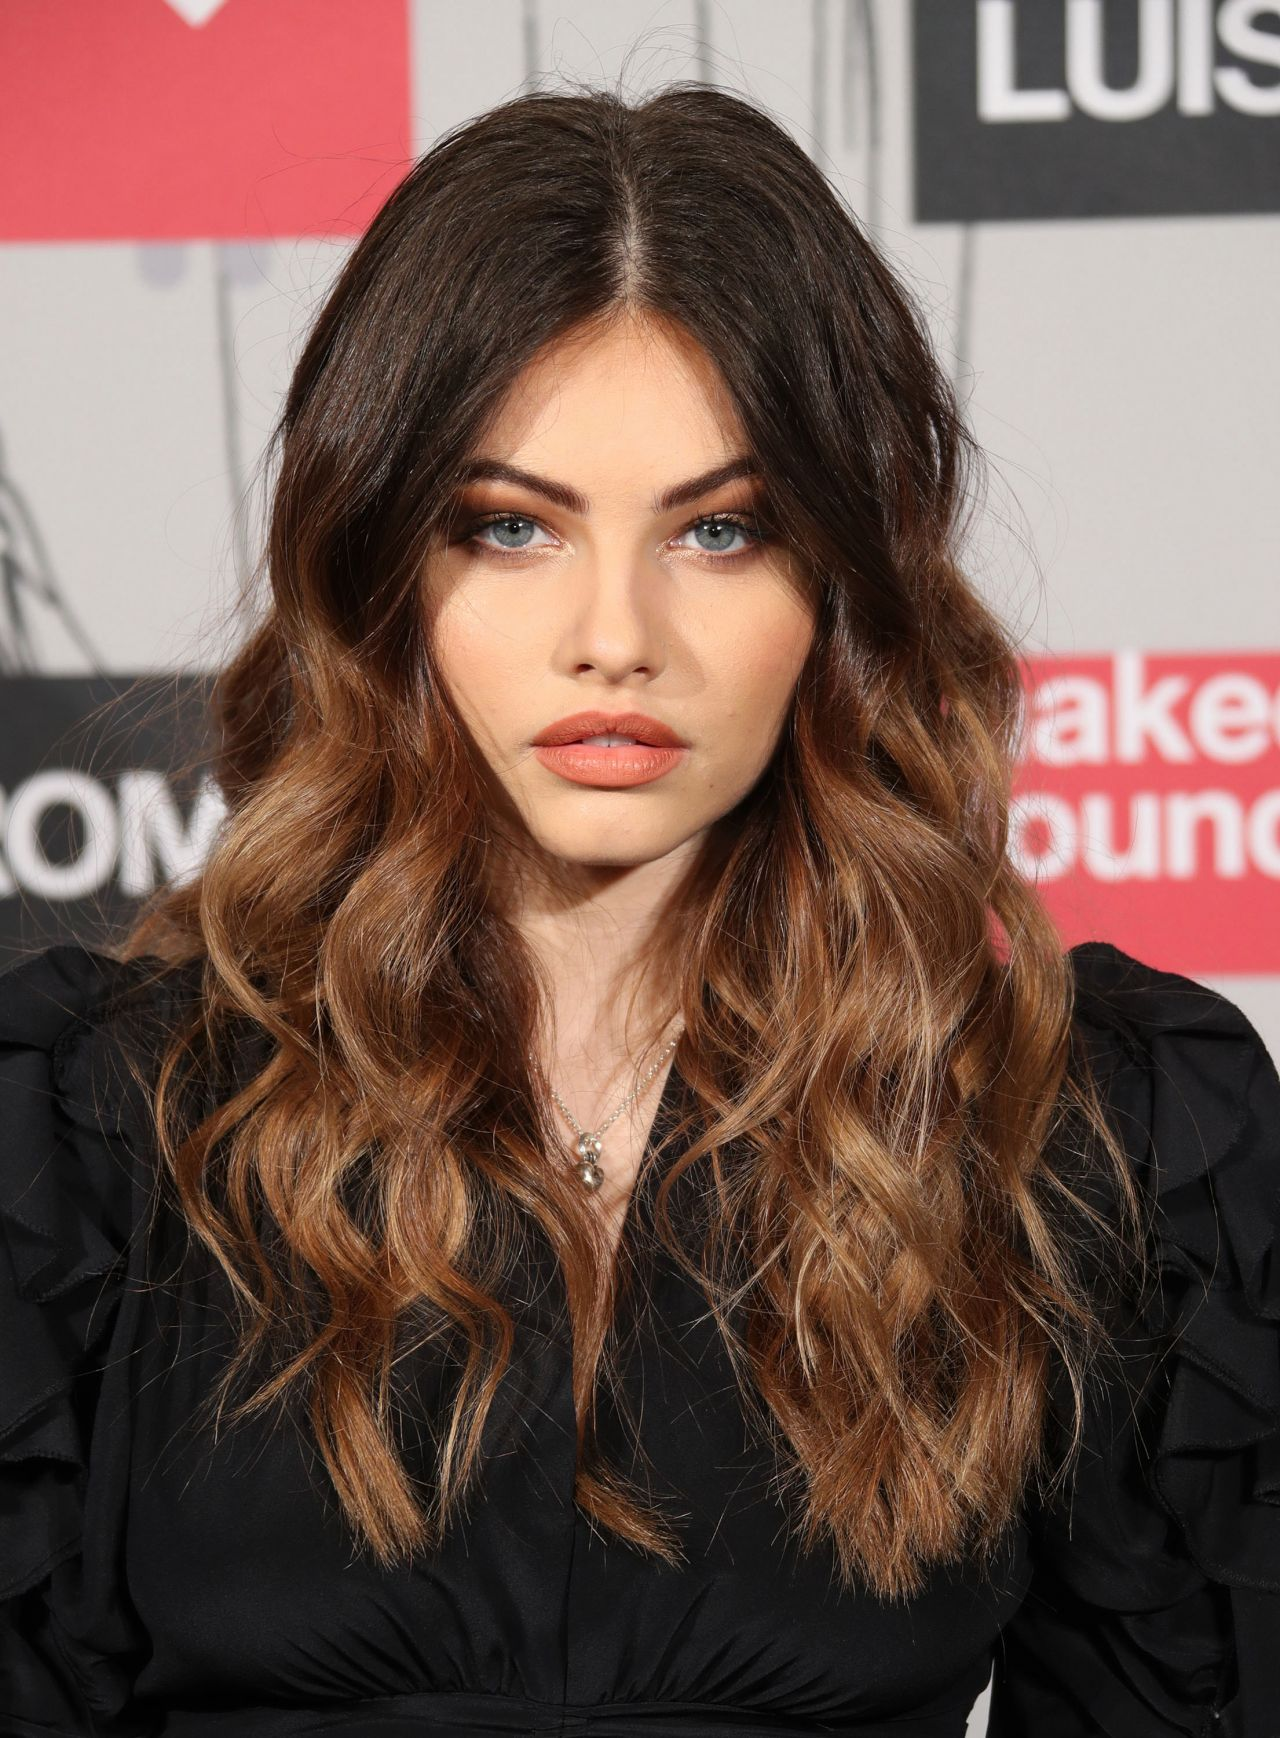 The Most Beautiful Girl In The World, Thylane Blondeau